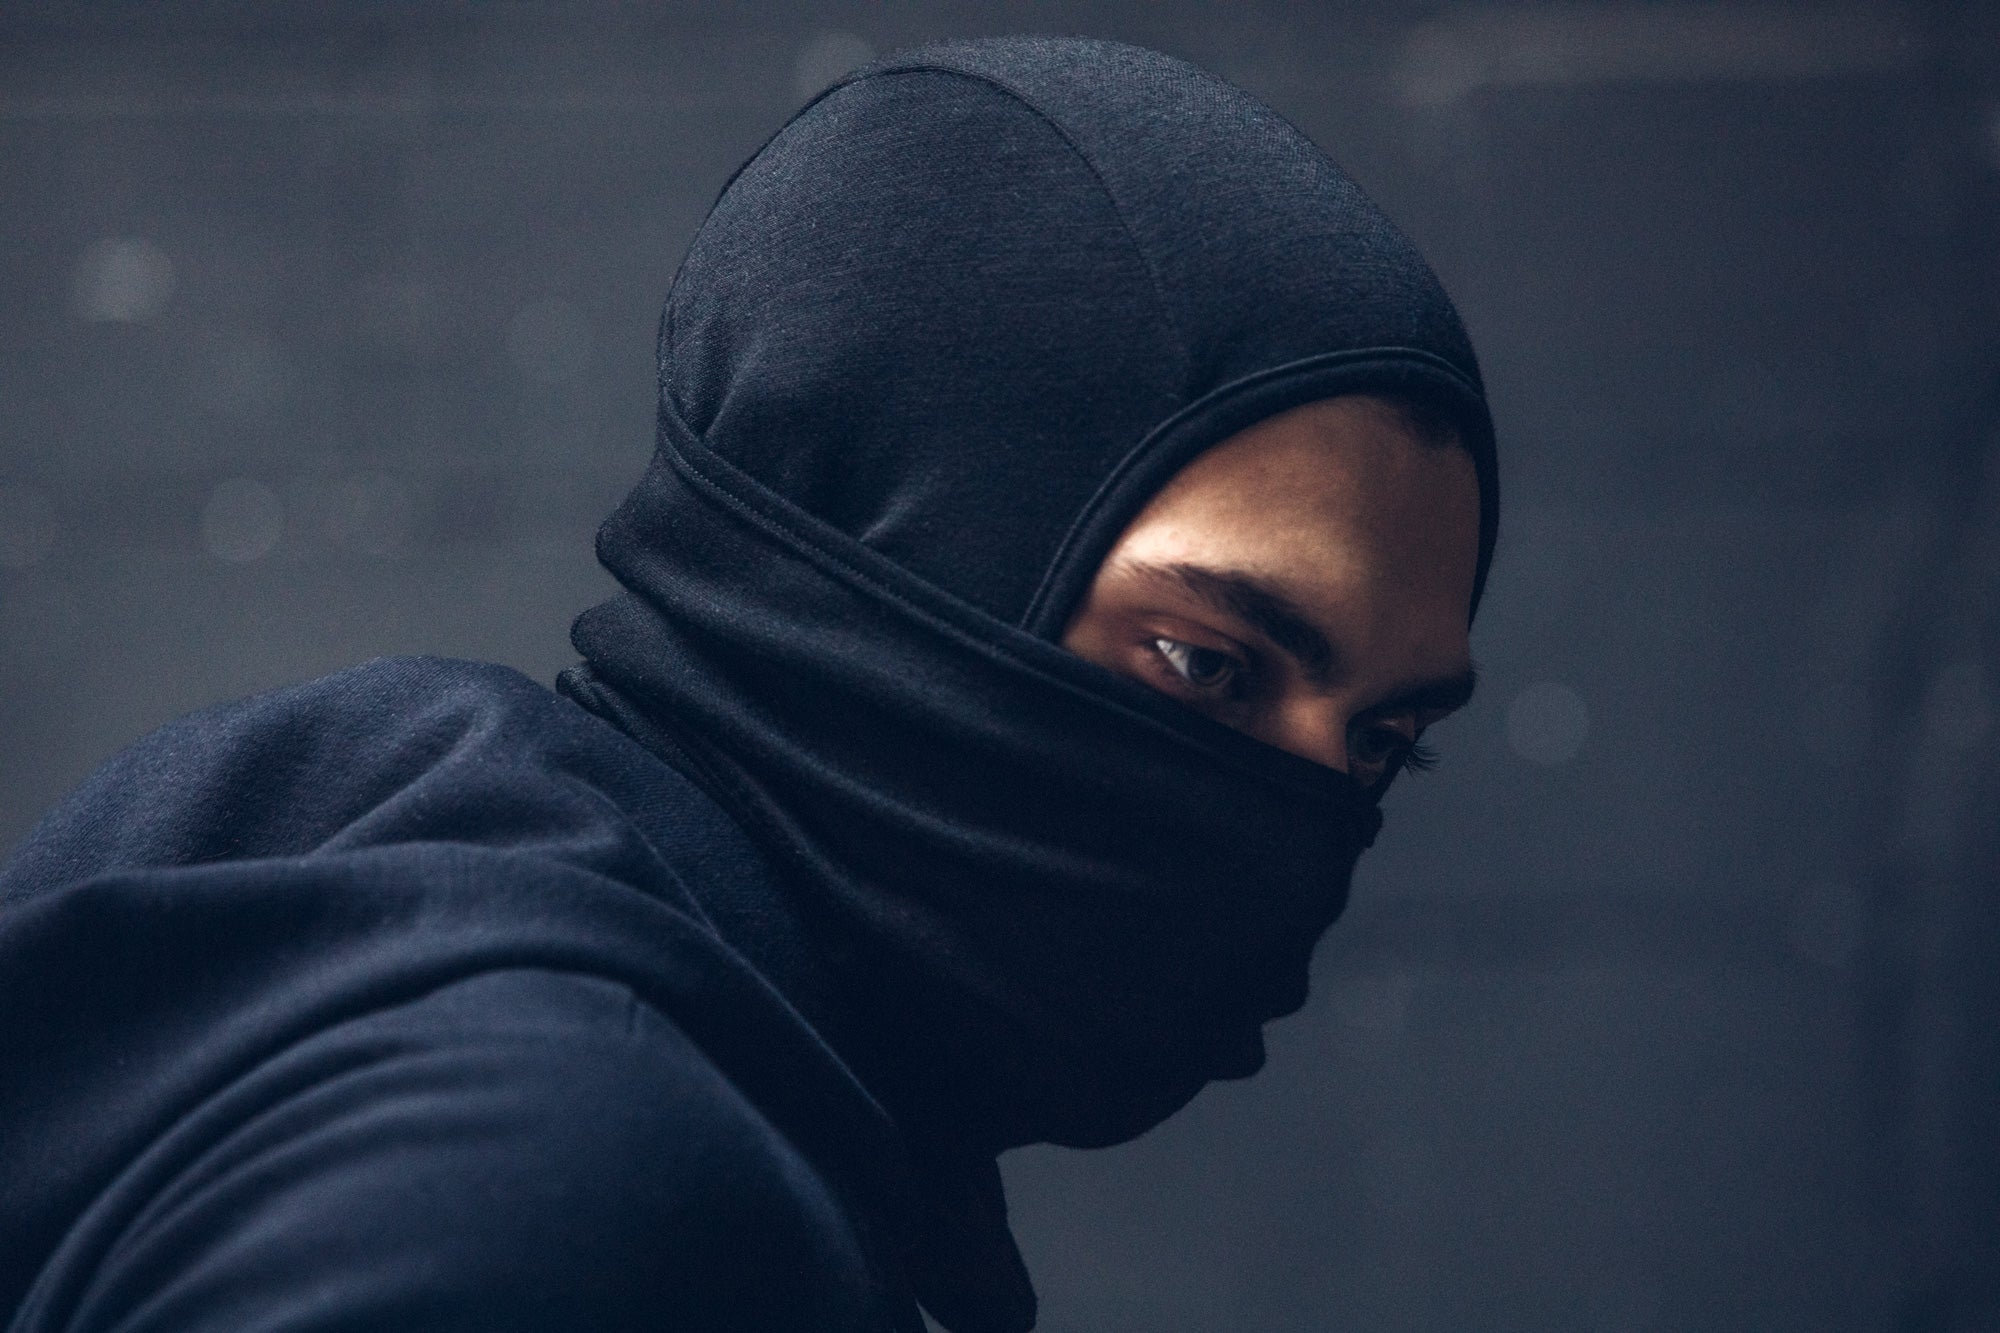 Kiril wearing the Doublefine Merino Balaclava while looking down.